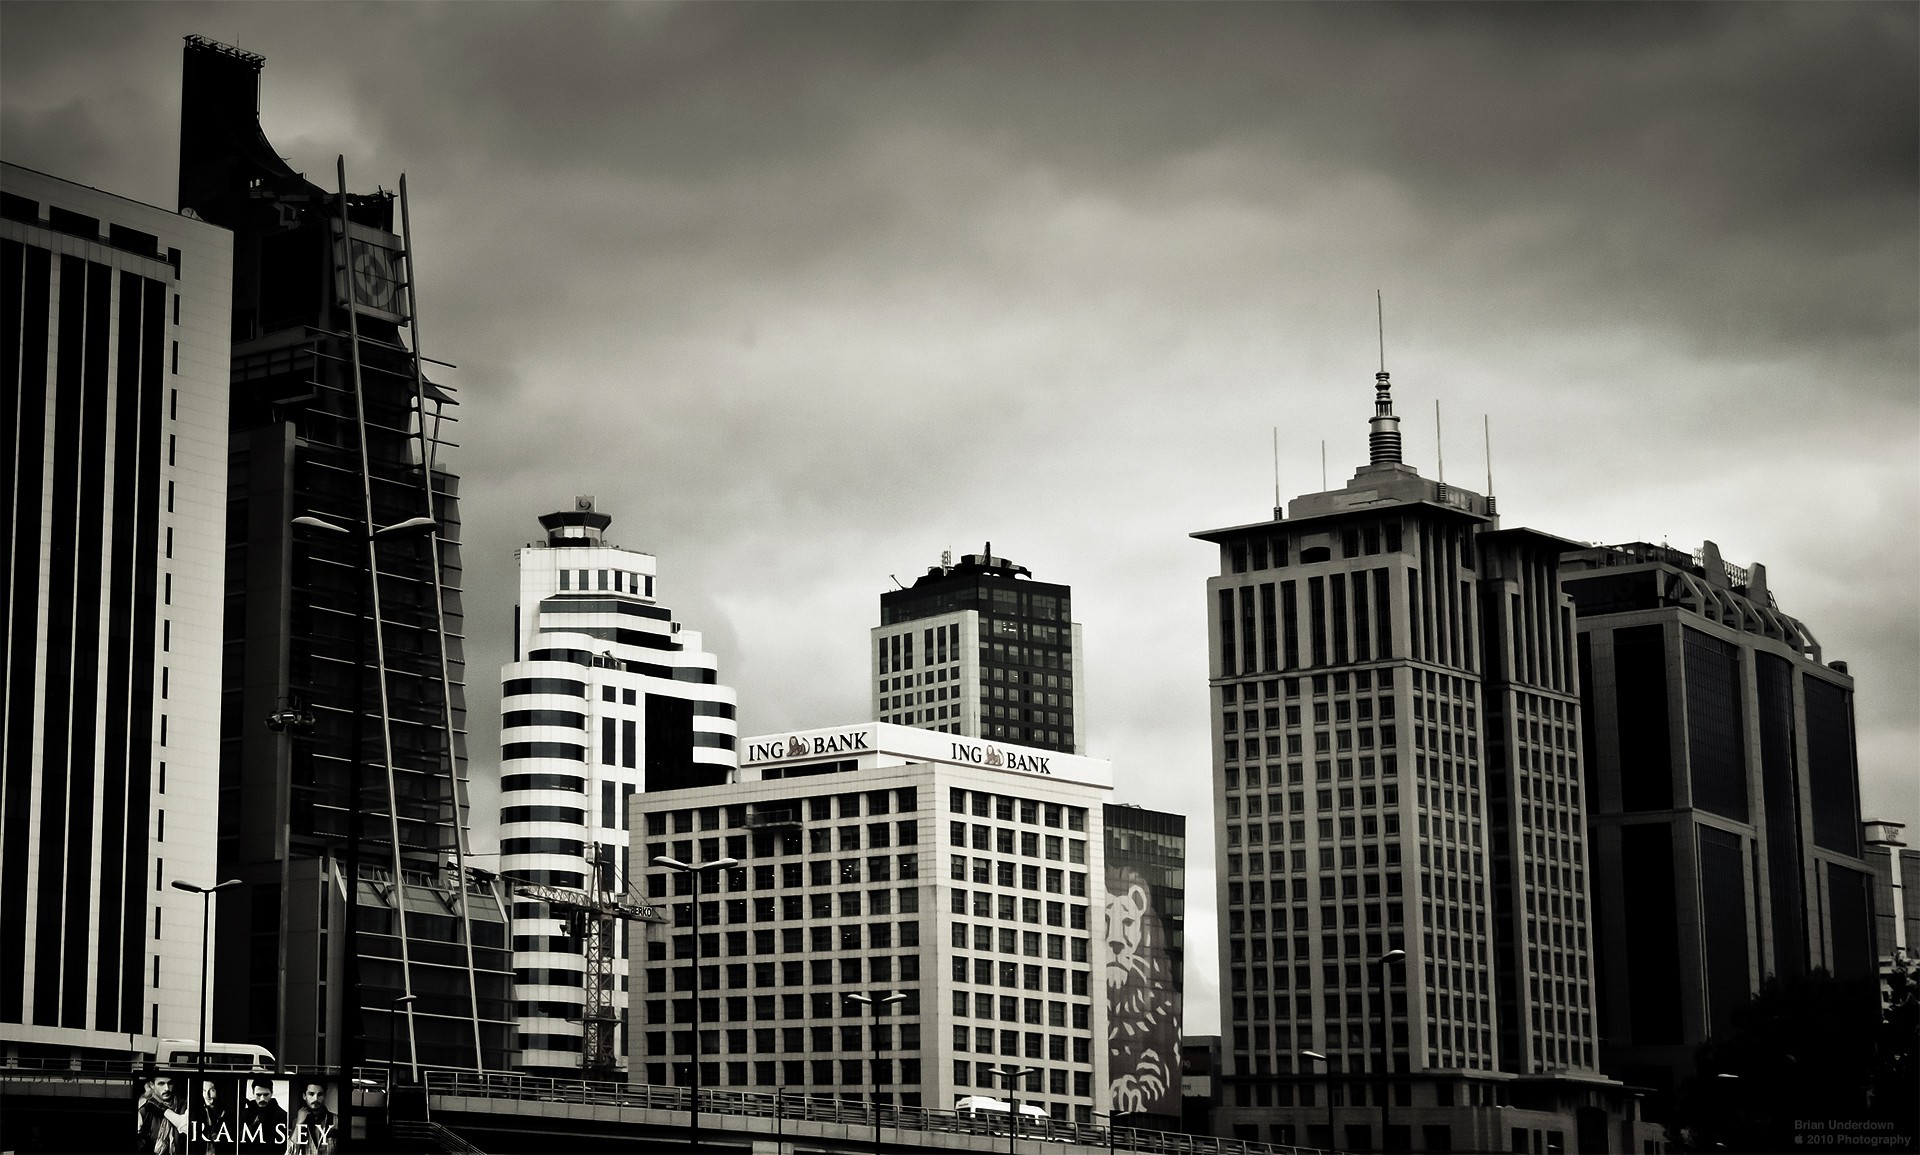 cityscapes Skyscrapers monochrome Istanbul HD Wallpaper